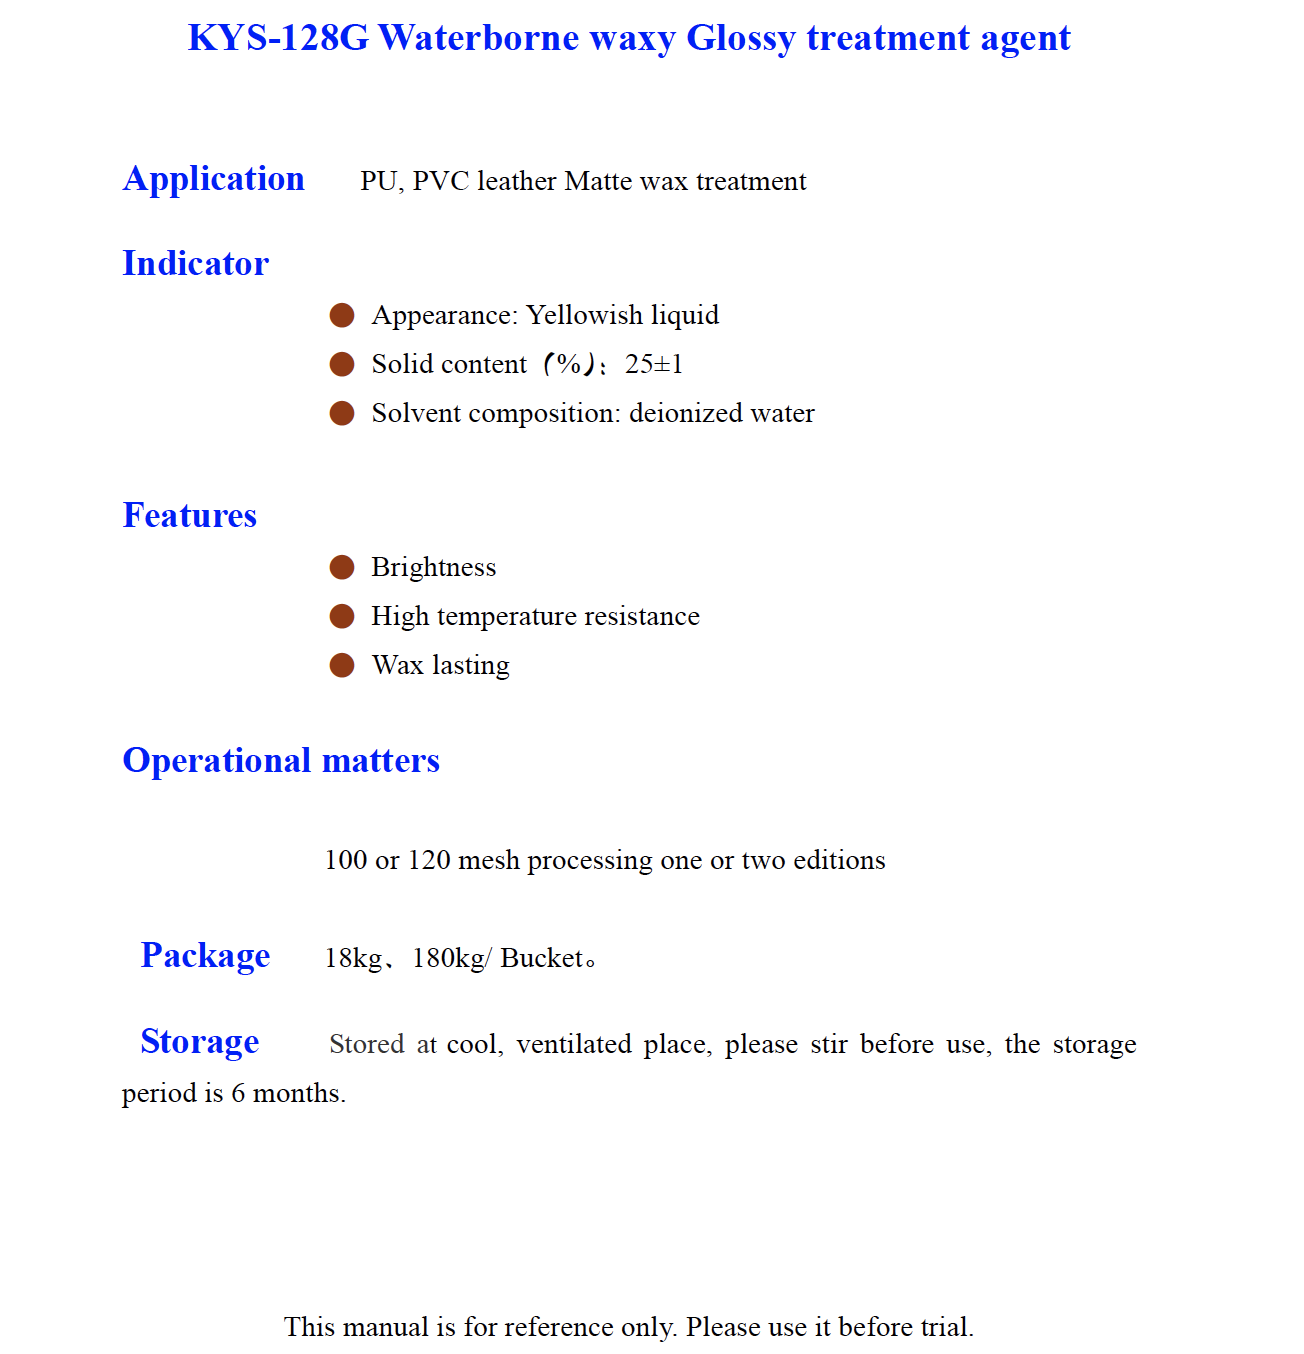 KYS 128G Waterborne waxy Glossy treatment agent